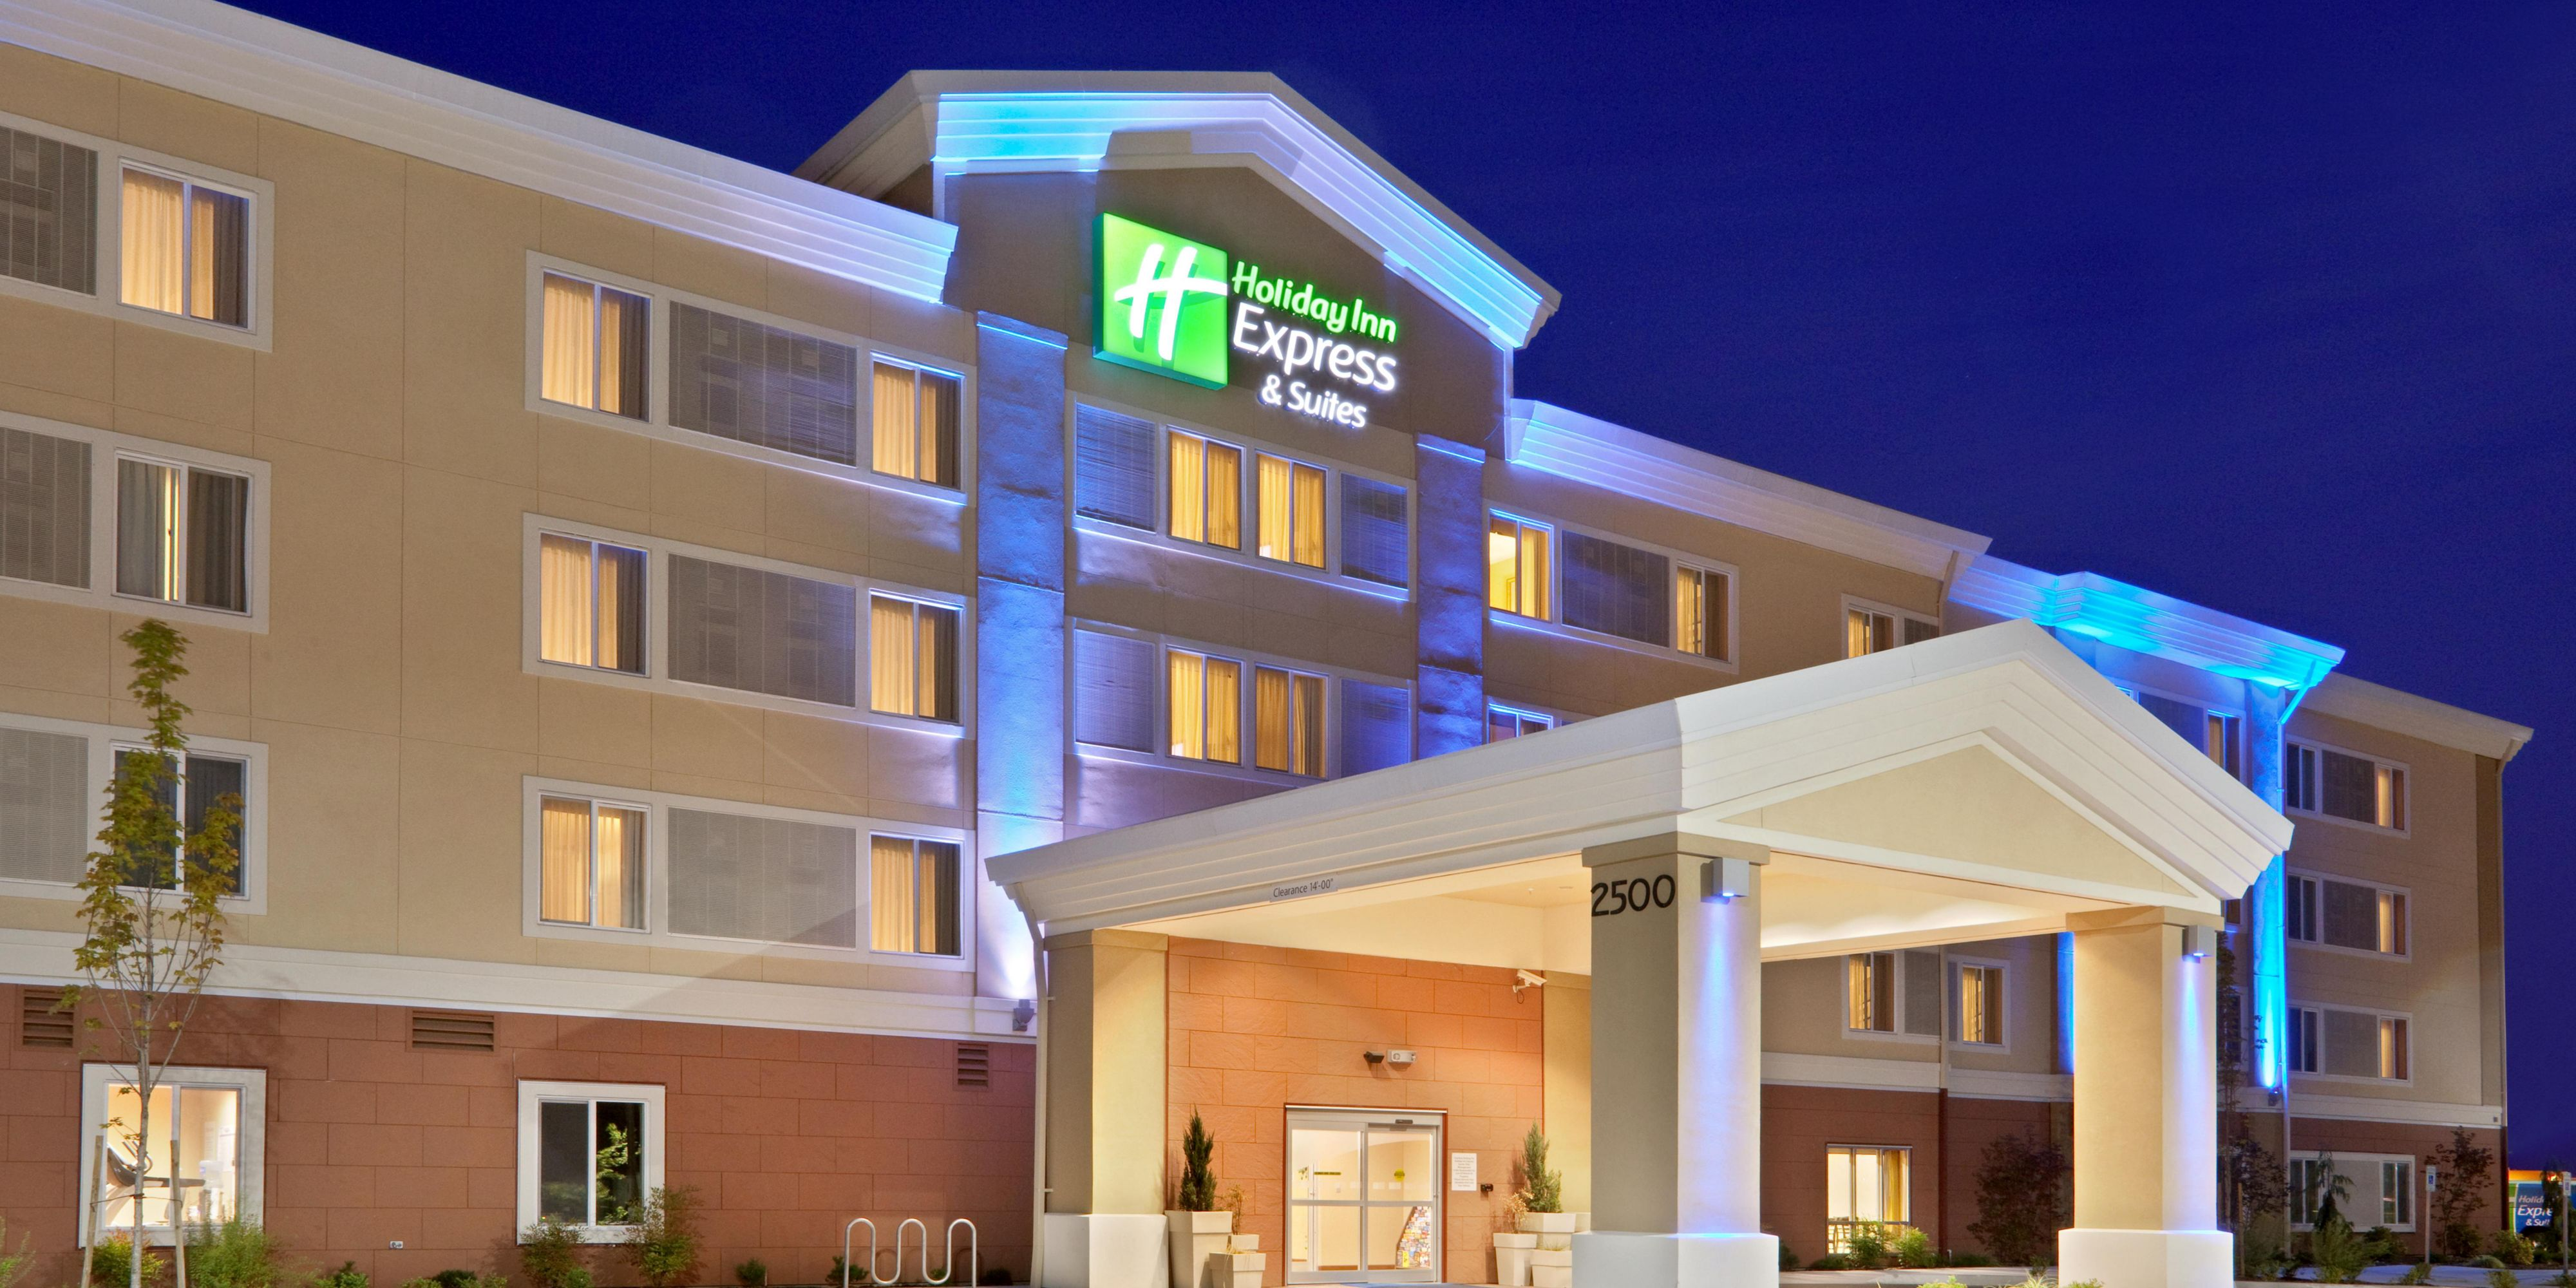 Holiday Inn Express & Suites Sumner Puyallup Area Hotel by IHG